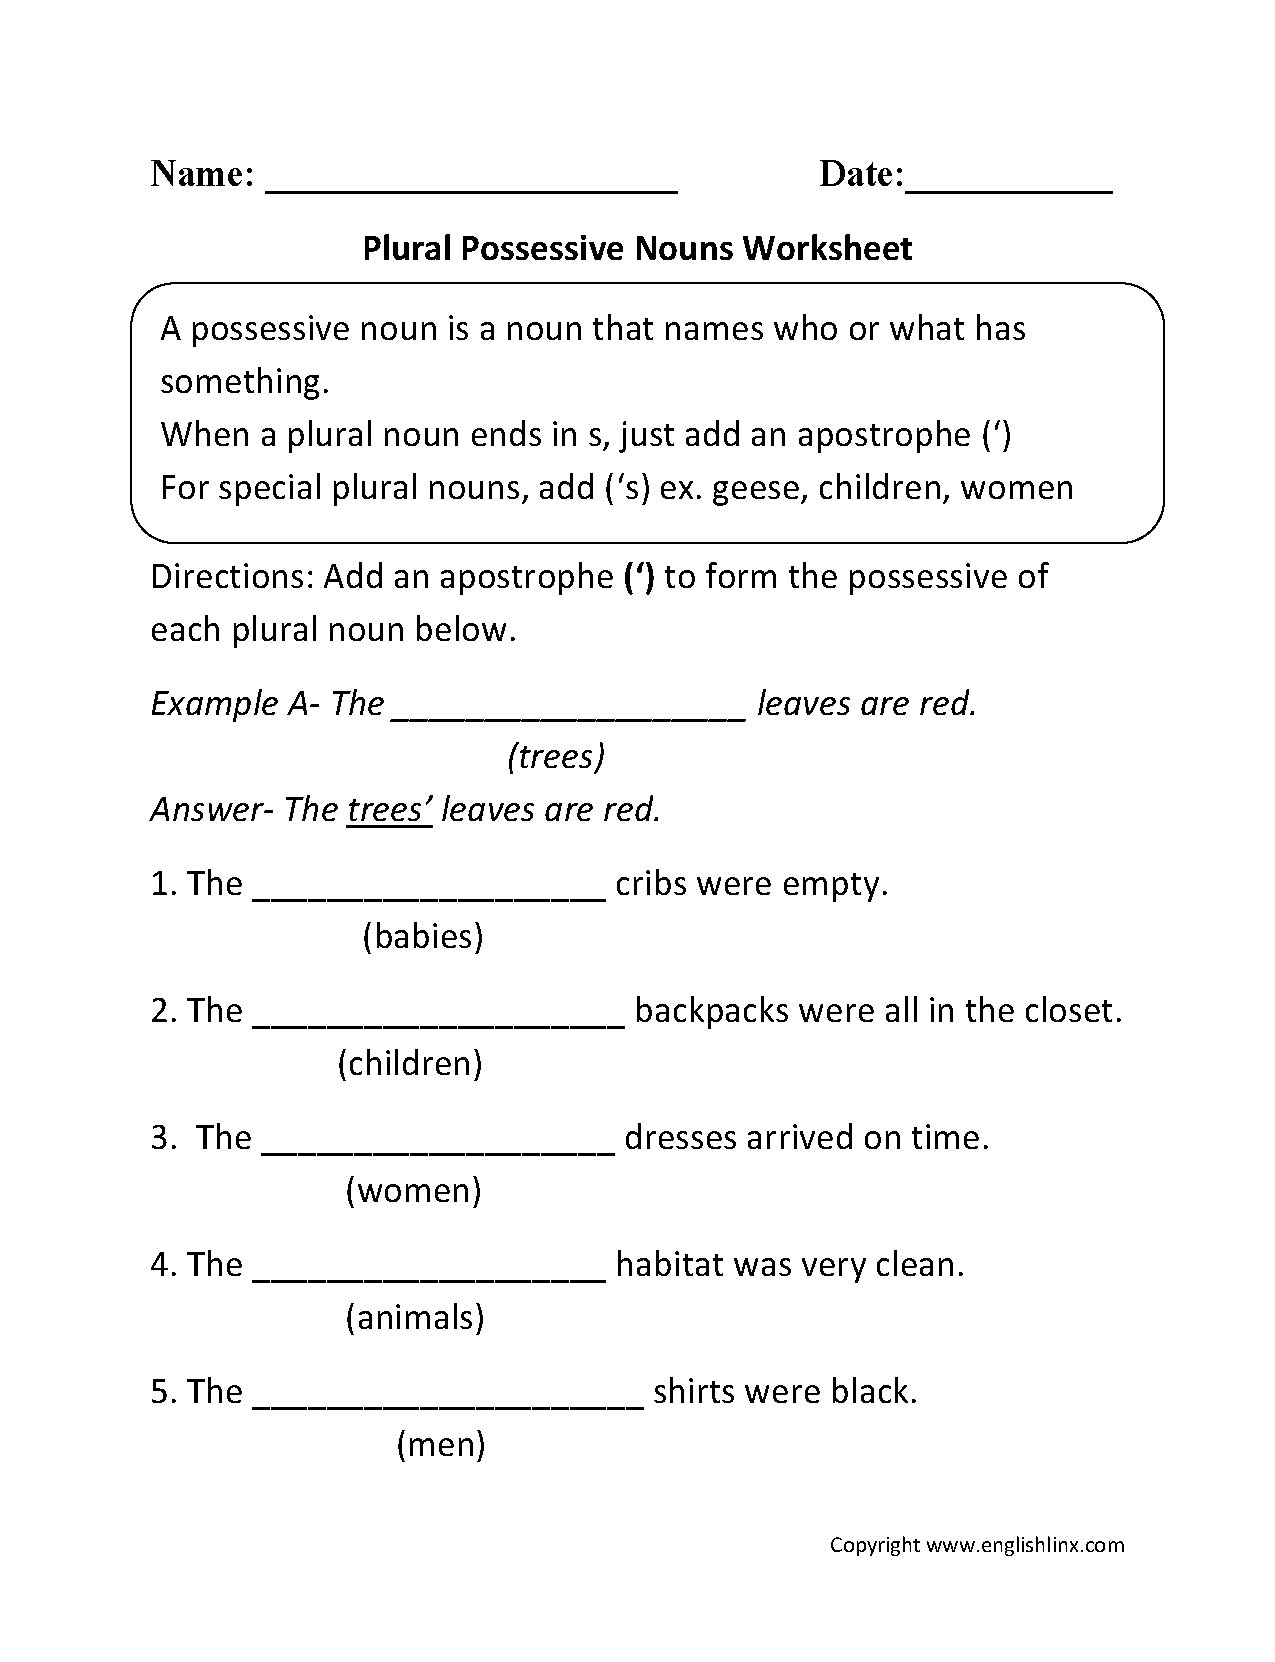 Aldiablosus  Winsome Nouns Worksheets  Possessive Nouns Worksheets With Marvelous Possessive Nouns Worksheets With Captivating Algebra  Functions Worksheets Also Common Core Math Worksheets For Th Grade In Addition Mitosis And The Cell Cycle Worksheet And Eic  Worksheet As Well As Biology If Worksheet Answers Additionally Ancient Greece Worksheet From Englishlinxcom With Aldiablosus  Marvelous Nouns Worksheets  Possessive Nouns Worksheets With Captivating Possessive Nouns Worksheets And Winsome Algebra  Functions Worksheets Also Common Core Math Worksheets For Th Grade In Addition Mitosis And The Cell Cycle Worksheet From Englishlinxcom